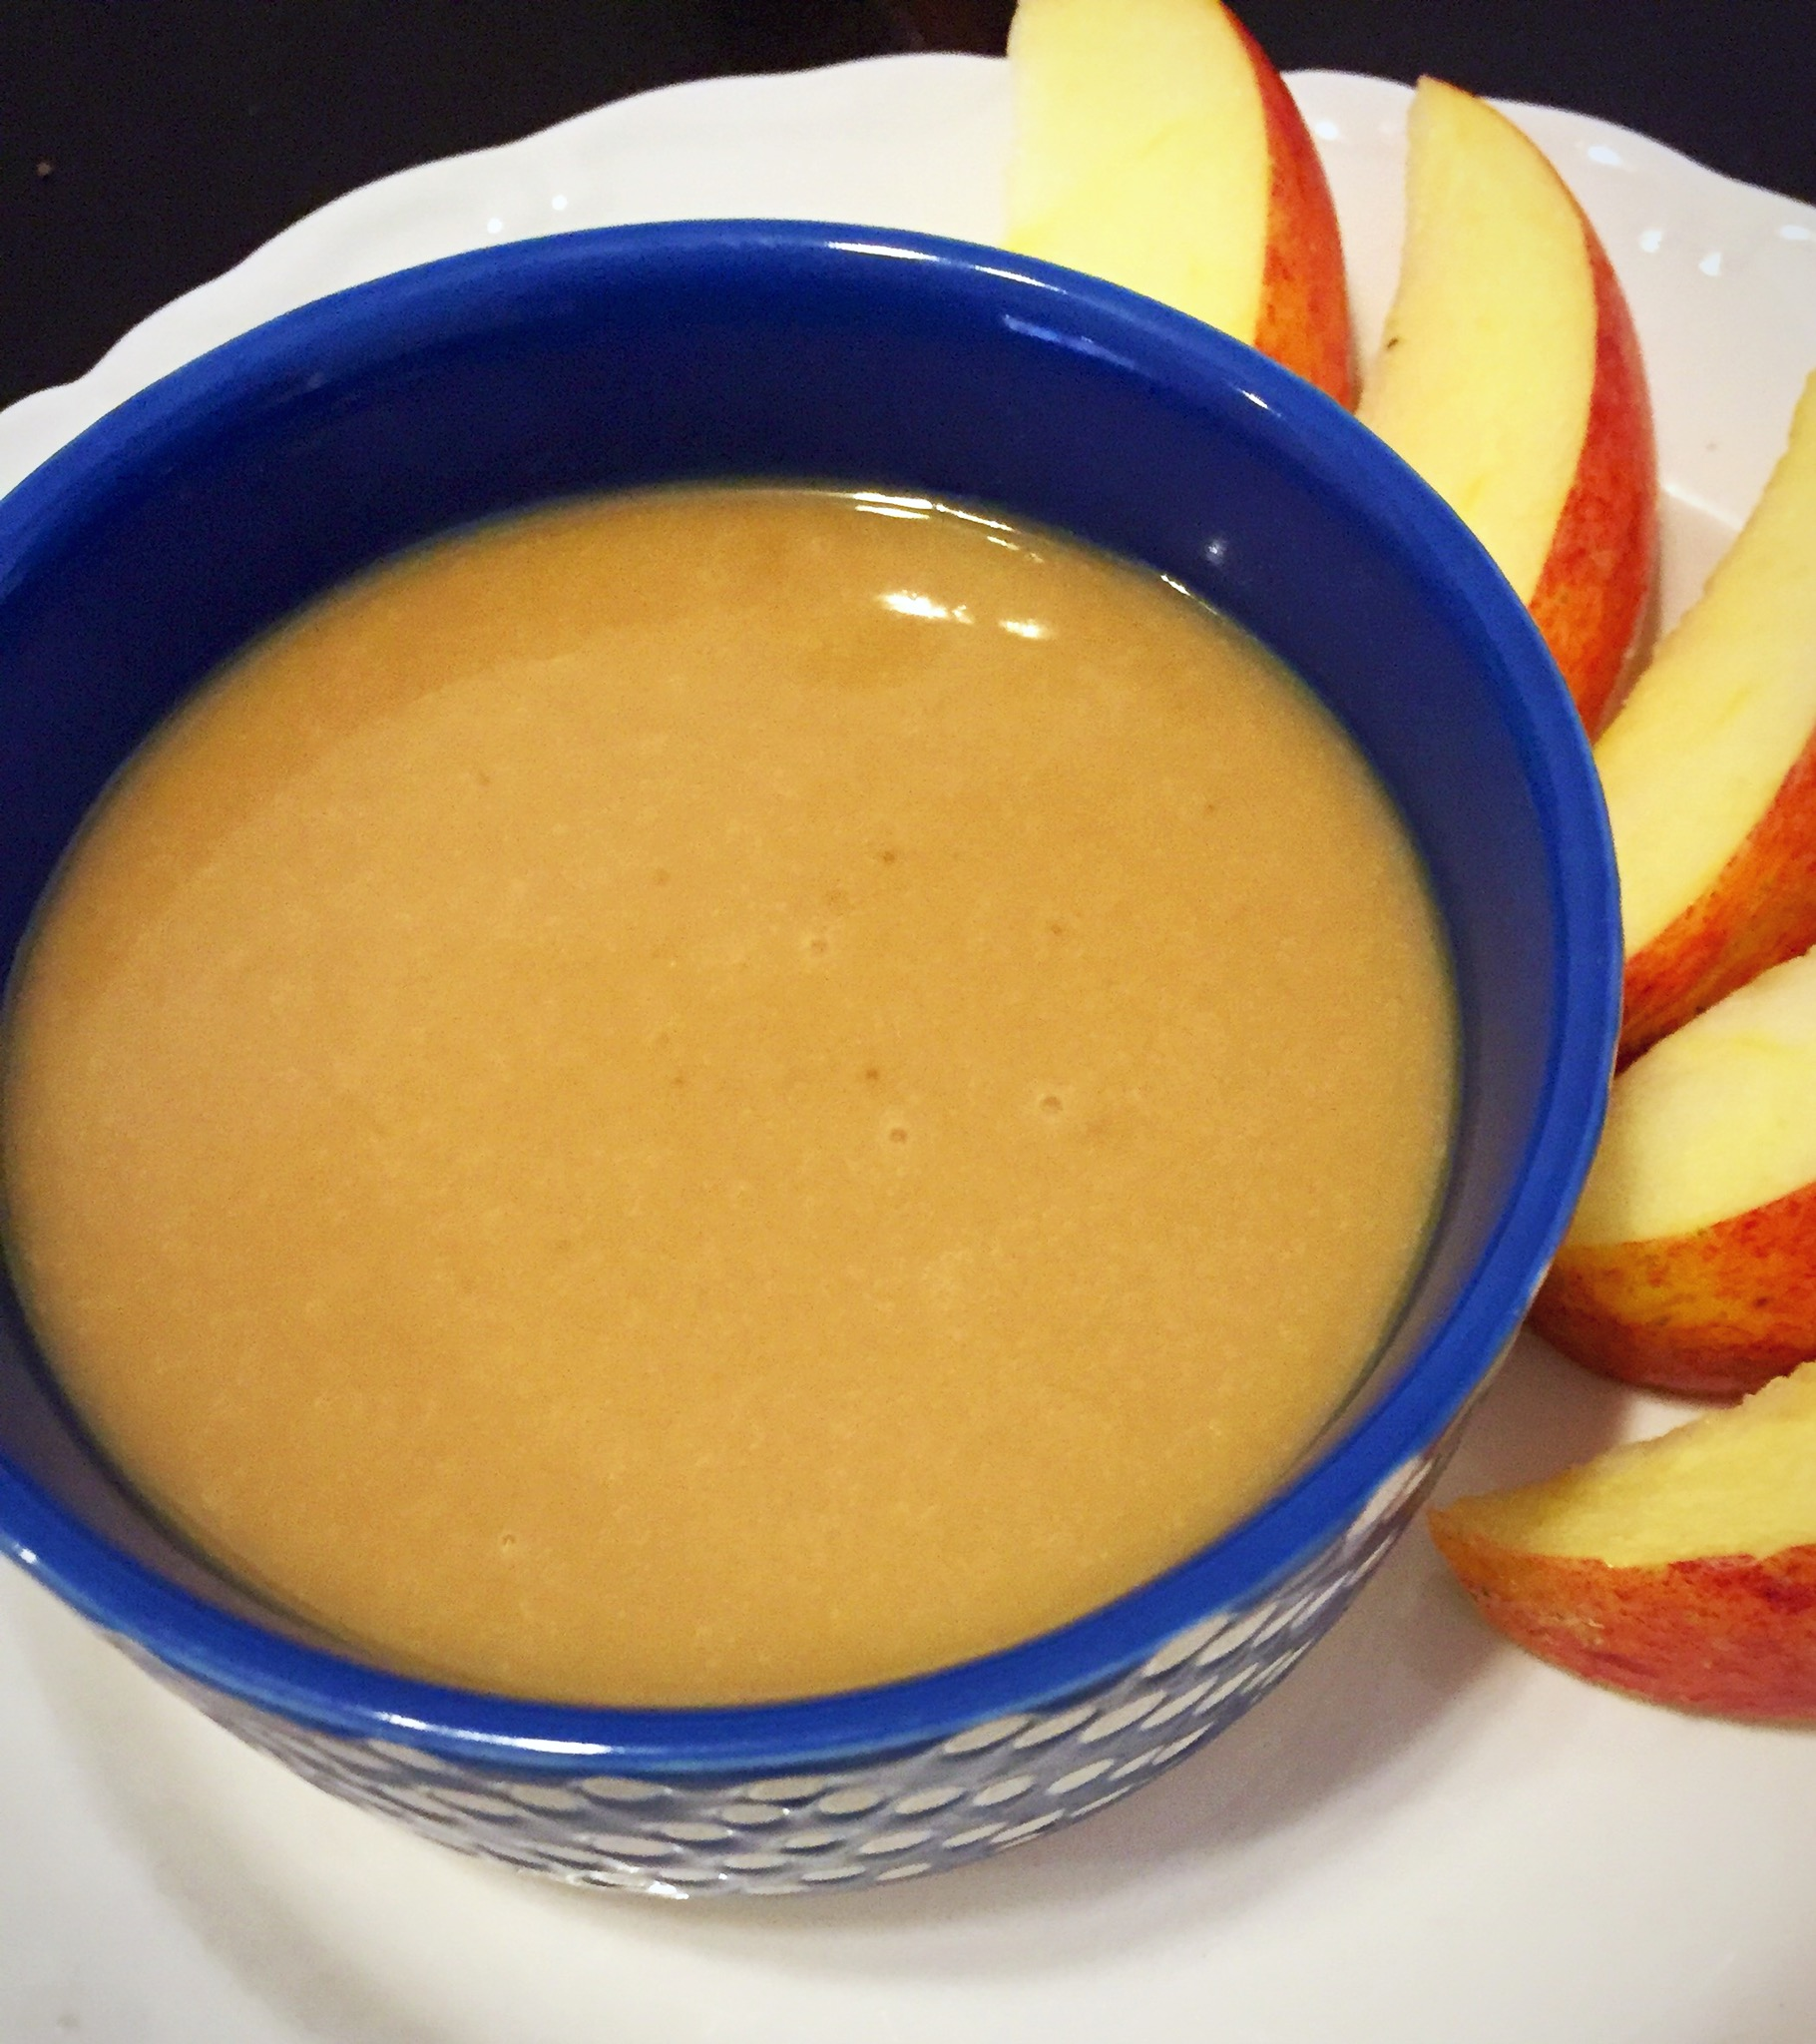 Amazing Caramel Dip is delicious with apples and other fruit!